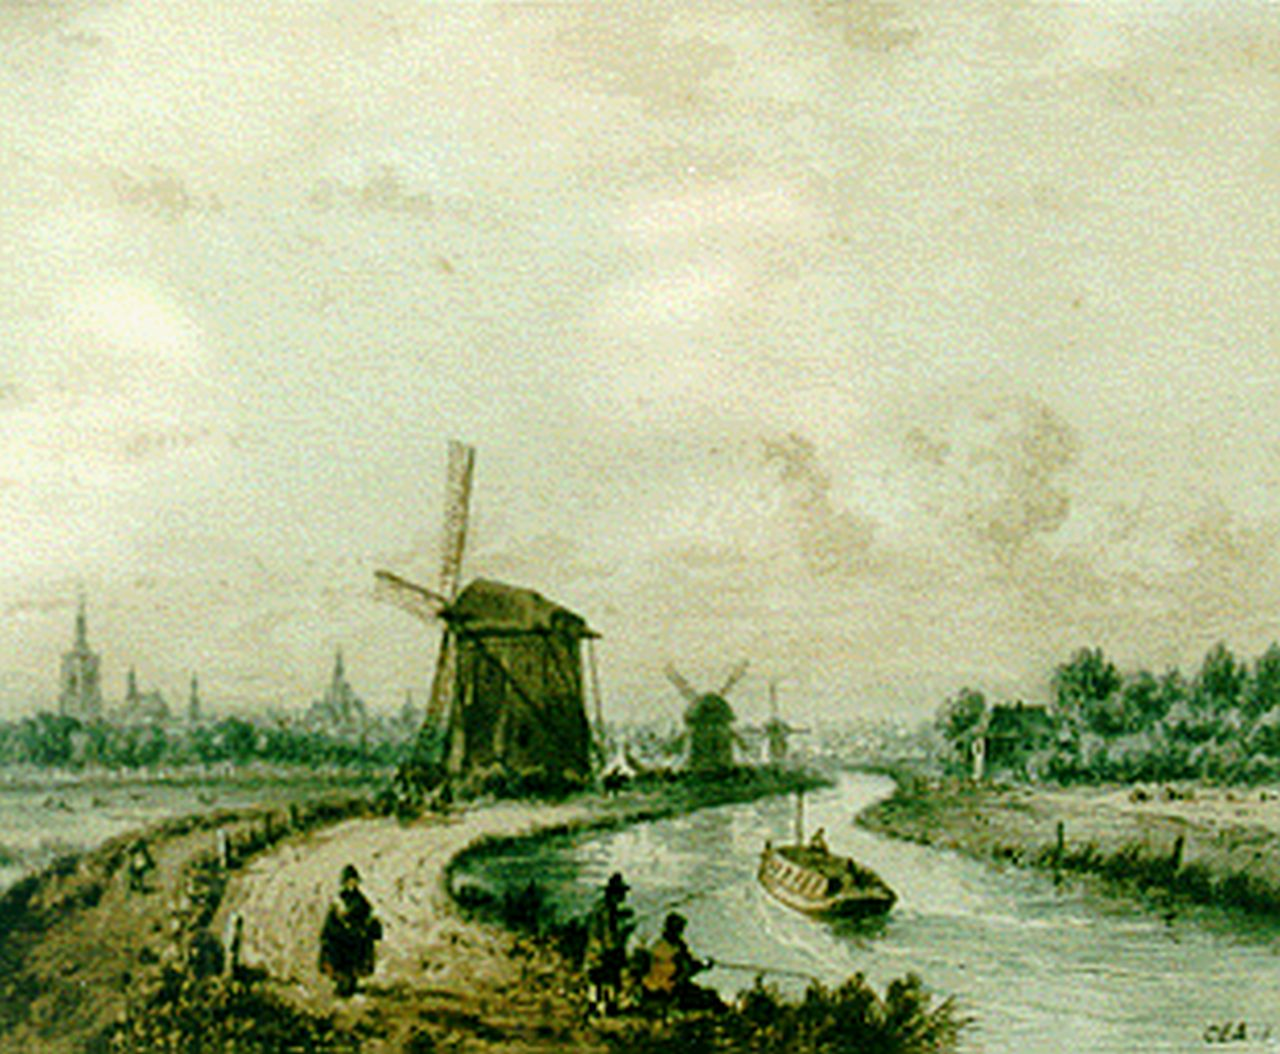 Ahrendts C.E.  | Carl Eduard Ahrendts, A boat-canal, The Hague, watercolour on paper 21.0 x 25.5 cm, signed l.r.